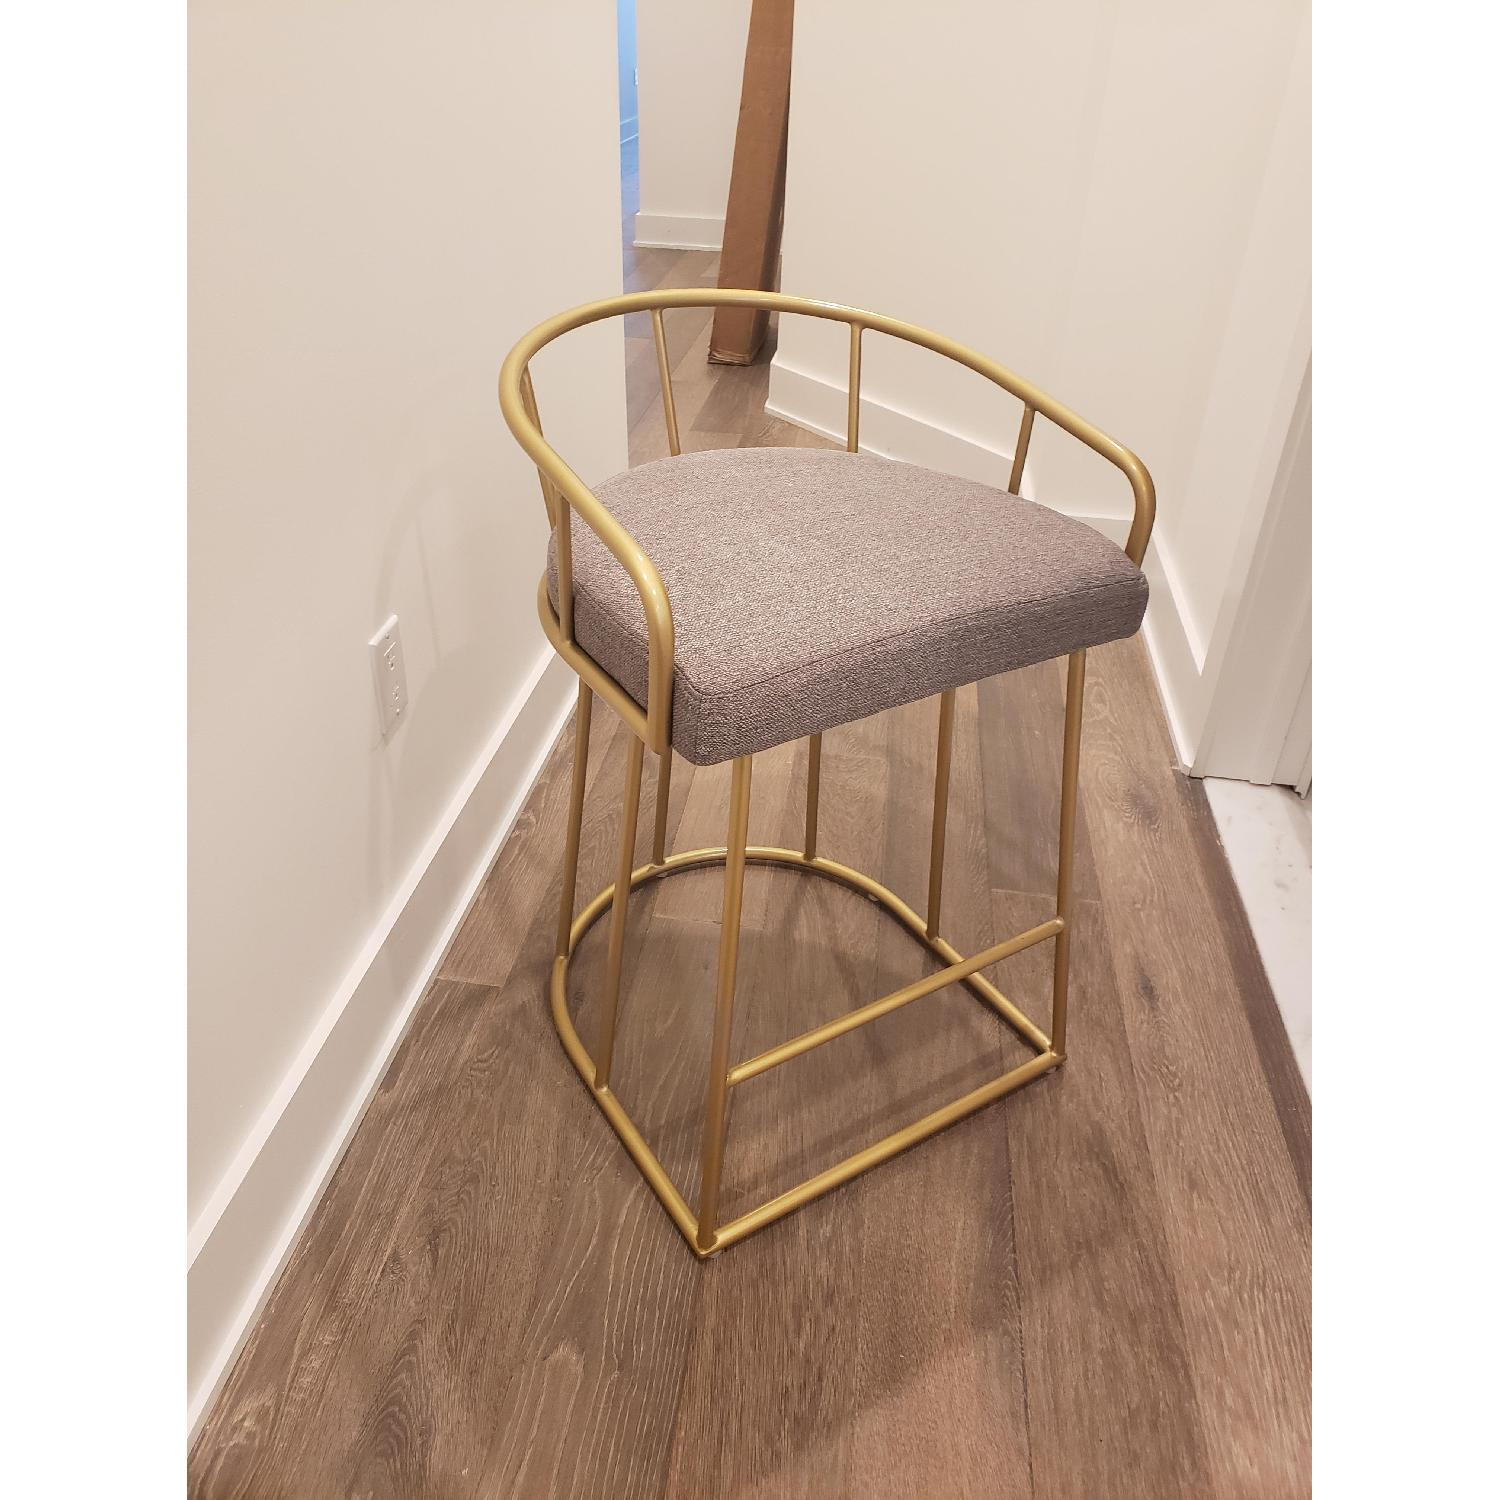 Macy's Gold Tone Upholstered Counter Stools - image-1